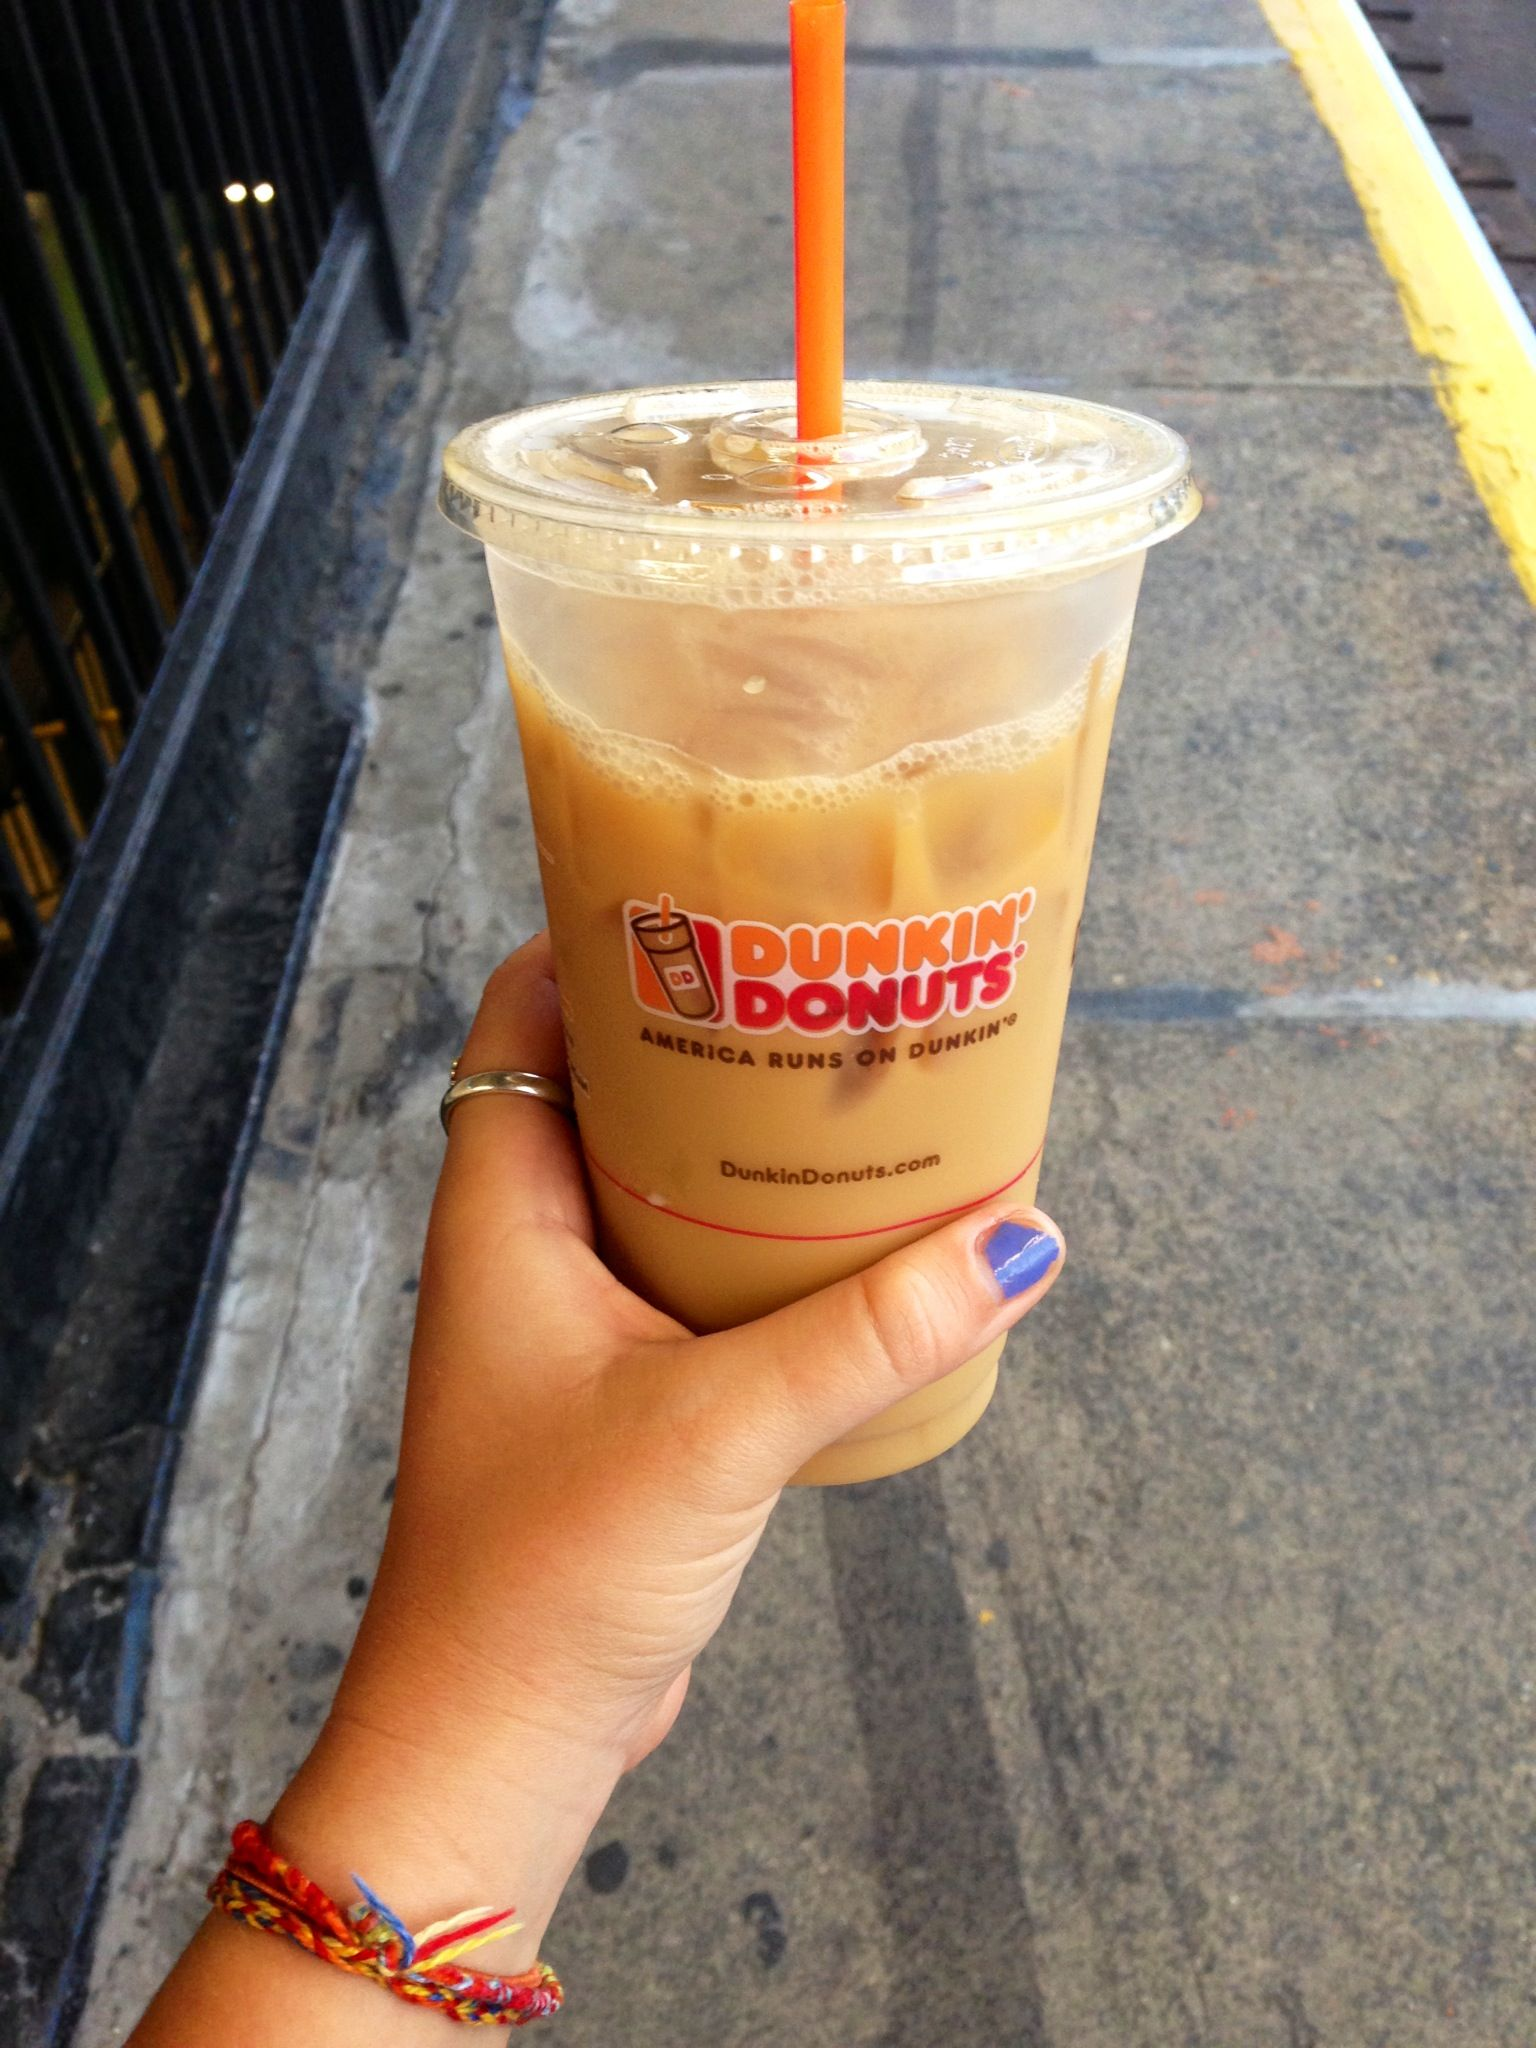 Dunkin' Donuts, iced coffee so delicious the thought of it